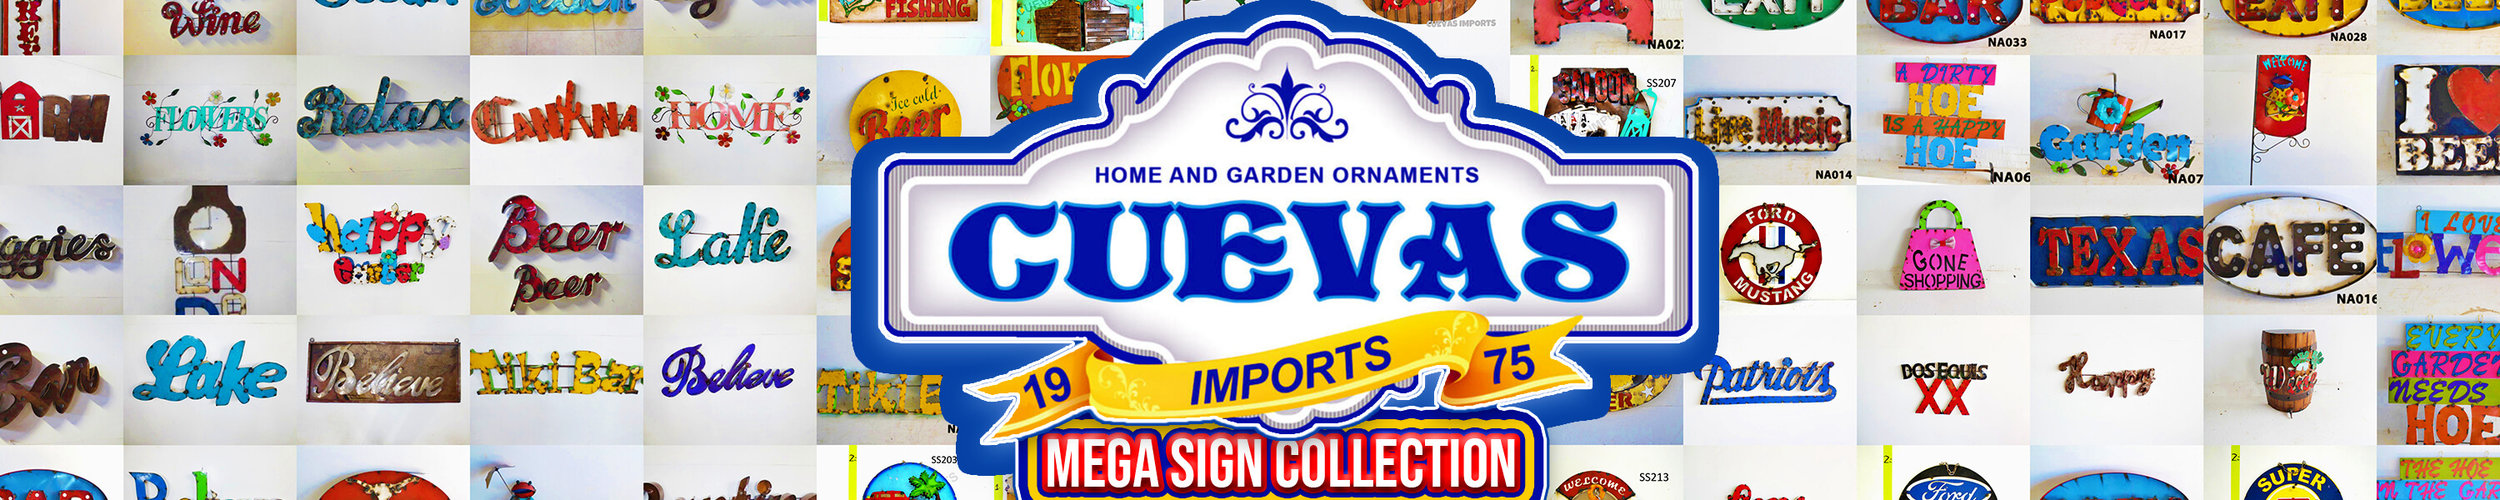 MEGA SIGNS COLLECTION Sign banner.jpg